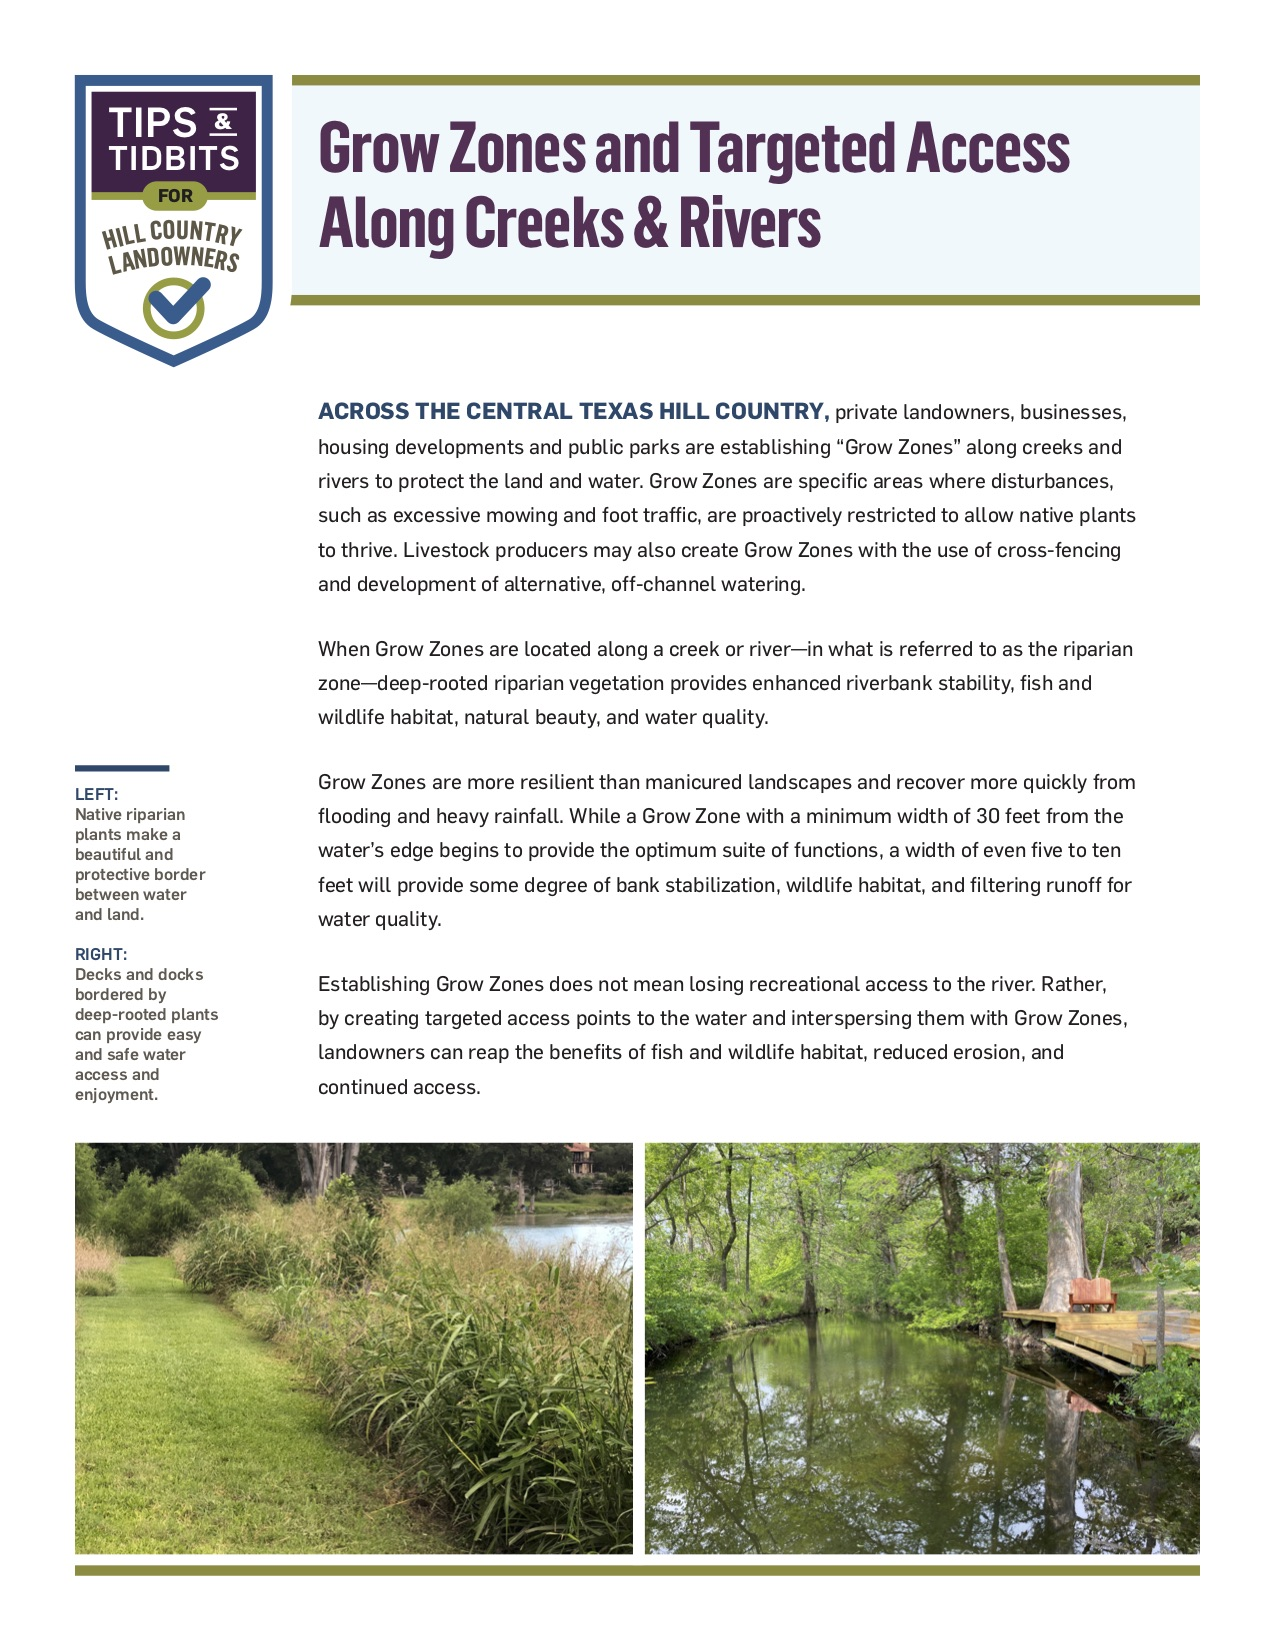 """Cover for PDF """"Grow Zones and Targeted Access Along Creeks & Rivers"""""""